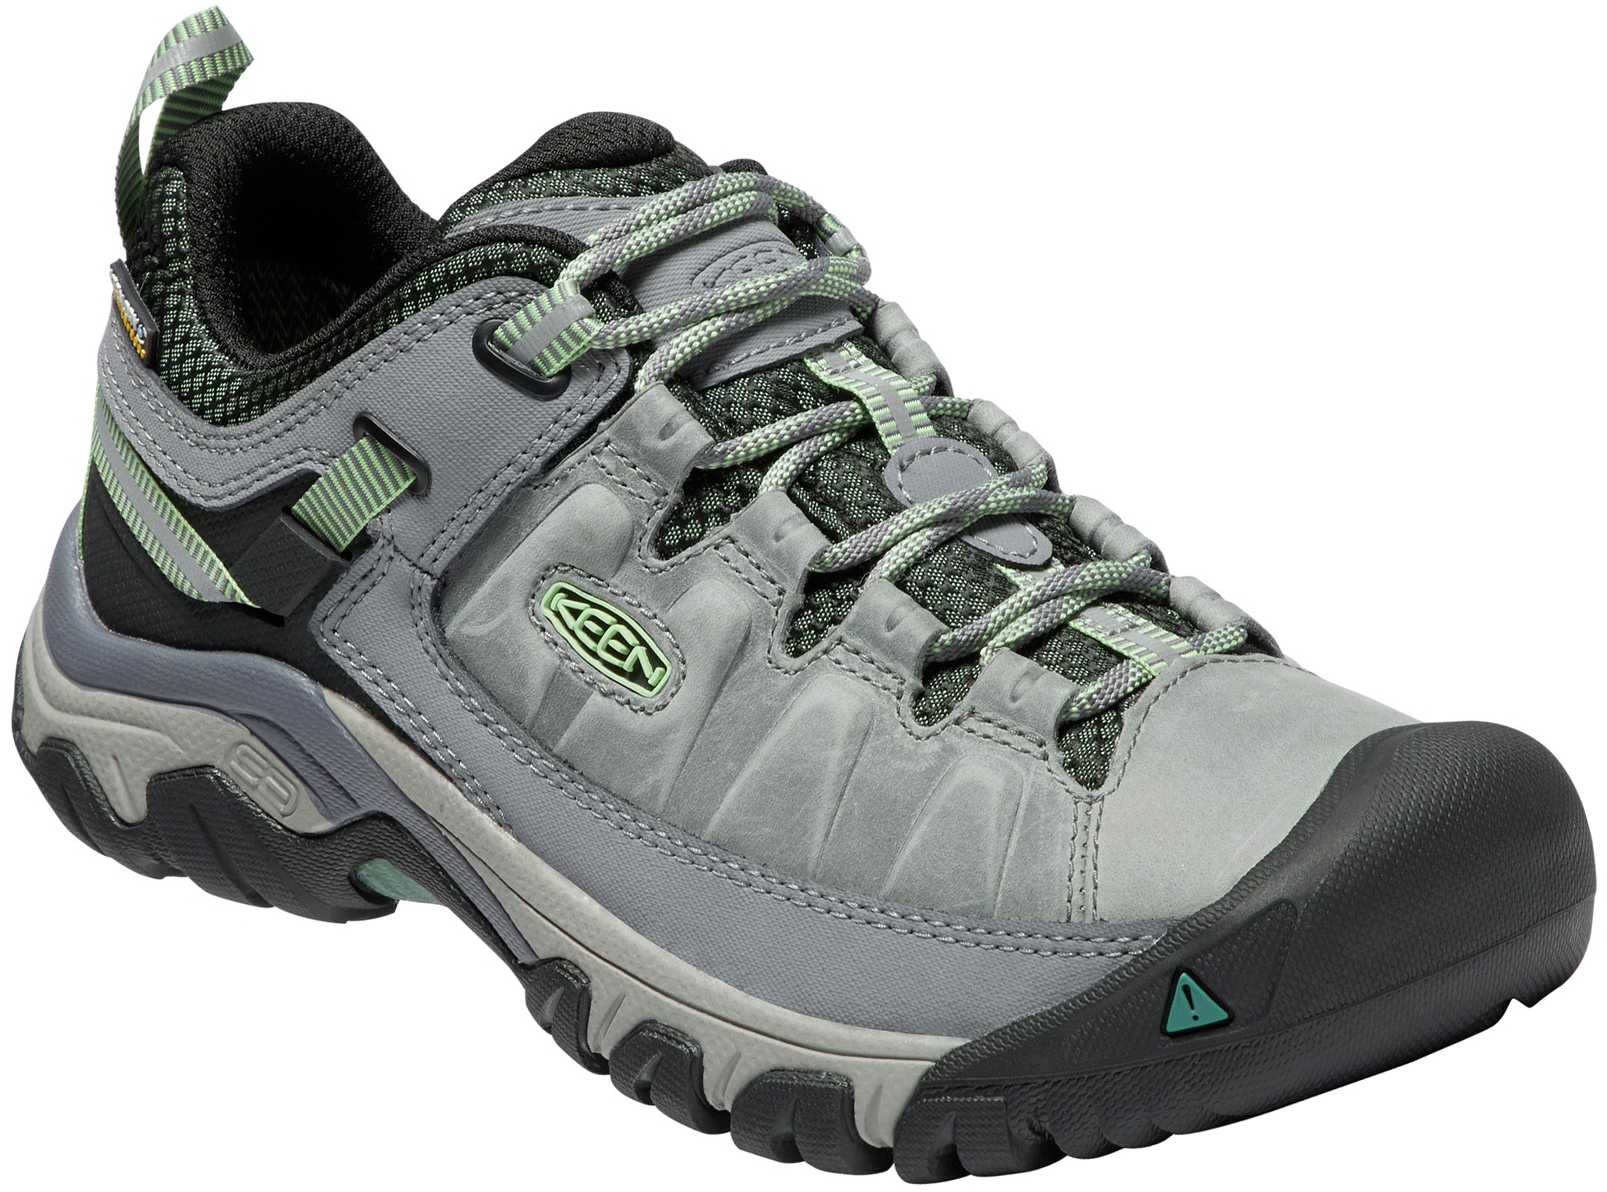 aed9a8604d59 Keen Targhee III Low Light Trail Shoes - Women s